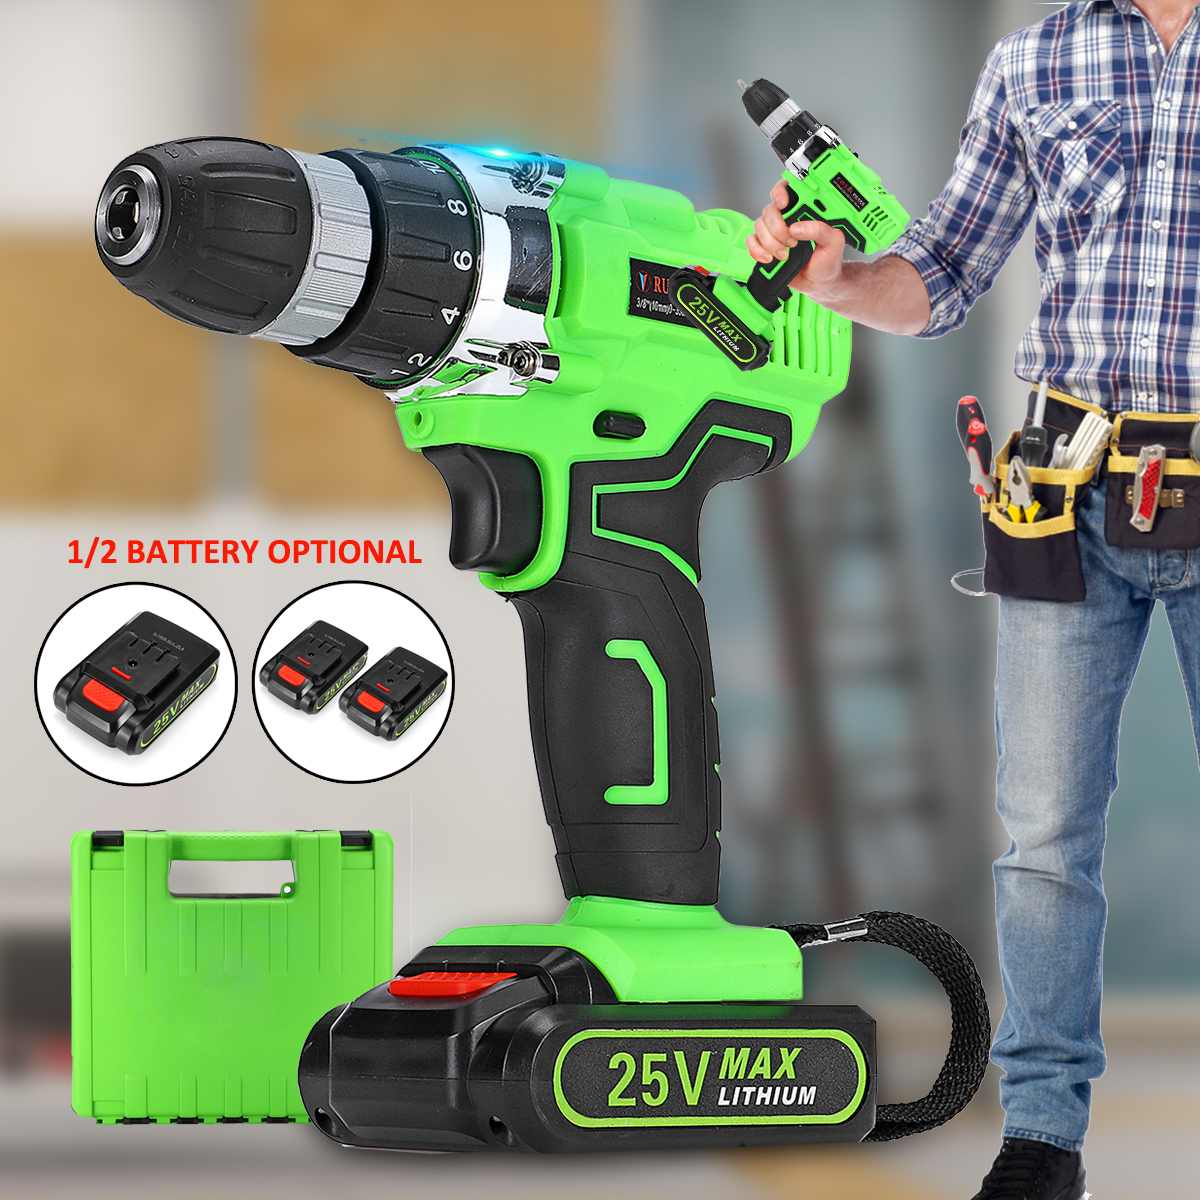 25V Electric Screwdriver Power Screw 2-Speed Electric Cordless Drill 3/8 Driver Rechargeable Li-Ion 1/2 Batteries Home DIY Tool25V Electric Screwdriver Power Screw 2-Speed Electric Cordless Drill 3/8 Driver Rechargeable Li-Ion 1/2 Batteries Home DIY Tool